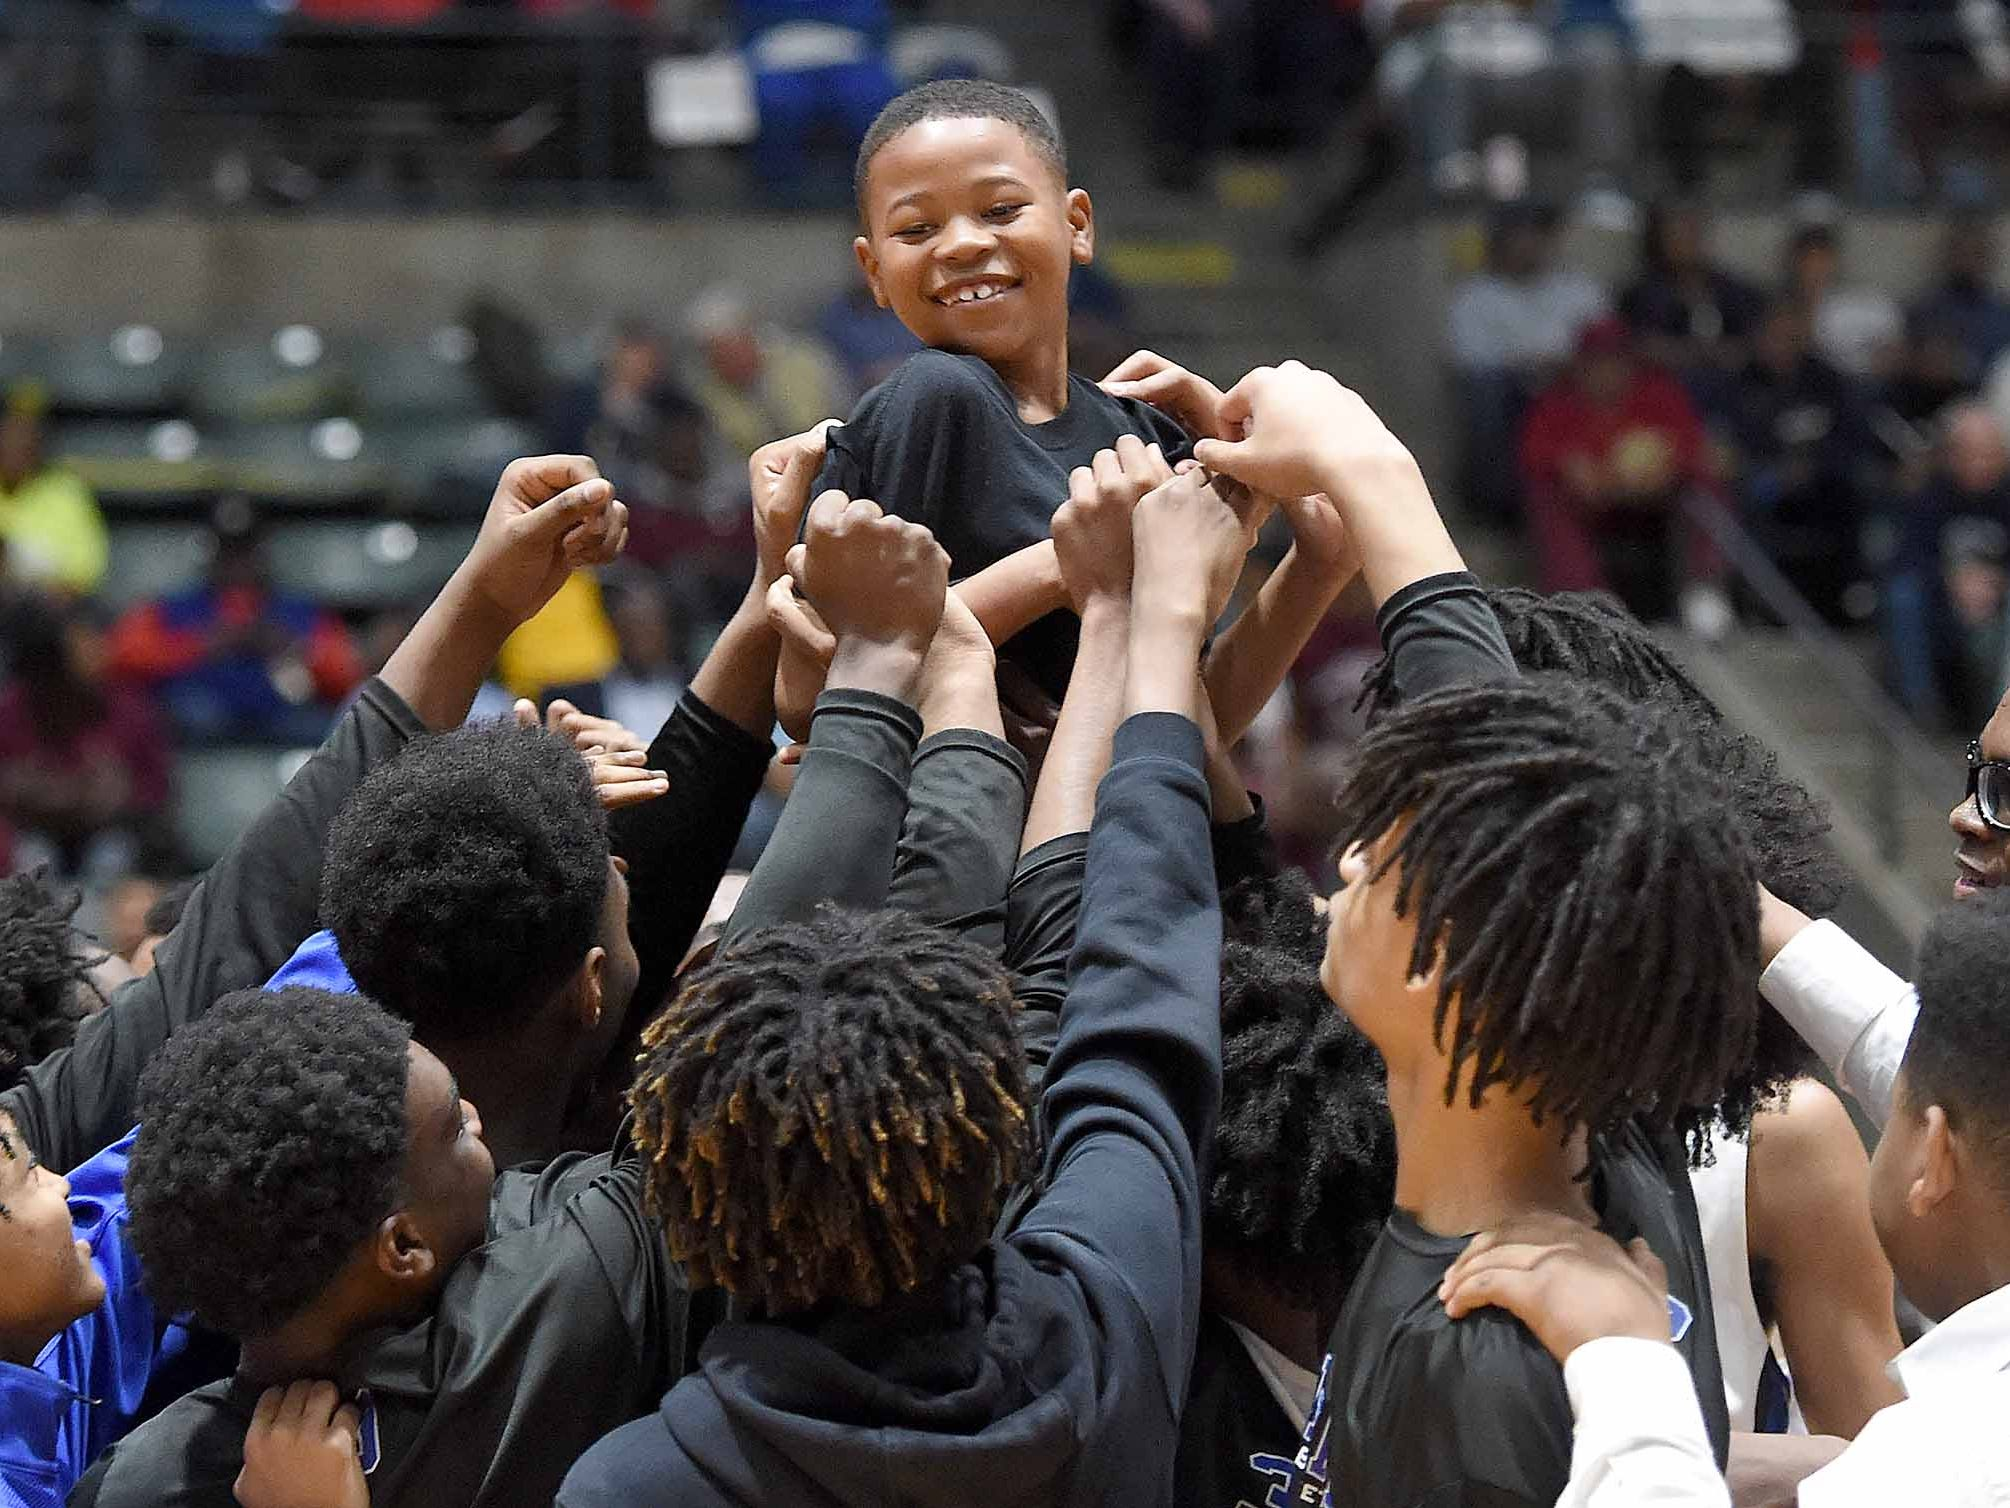 The Meridian Wildcats huddle before the game in the Class 6A finals of the MHSAA C Spire State Basketball Championships at the Mississippi Coliseum in Jackson, Miss., on Saturday, March 9, 2019.